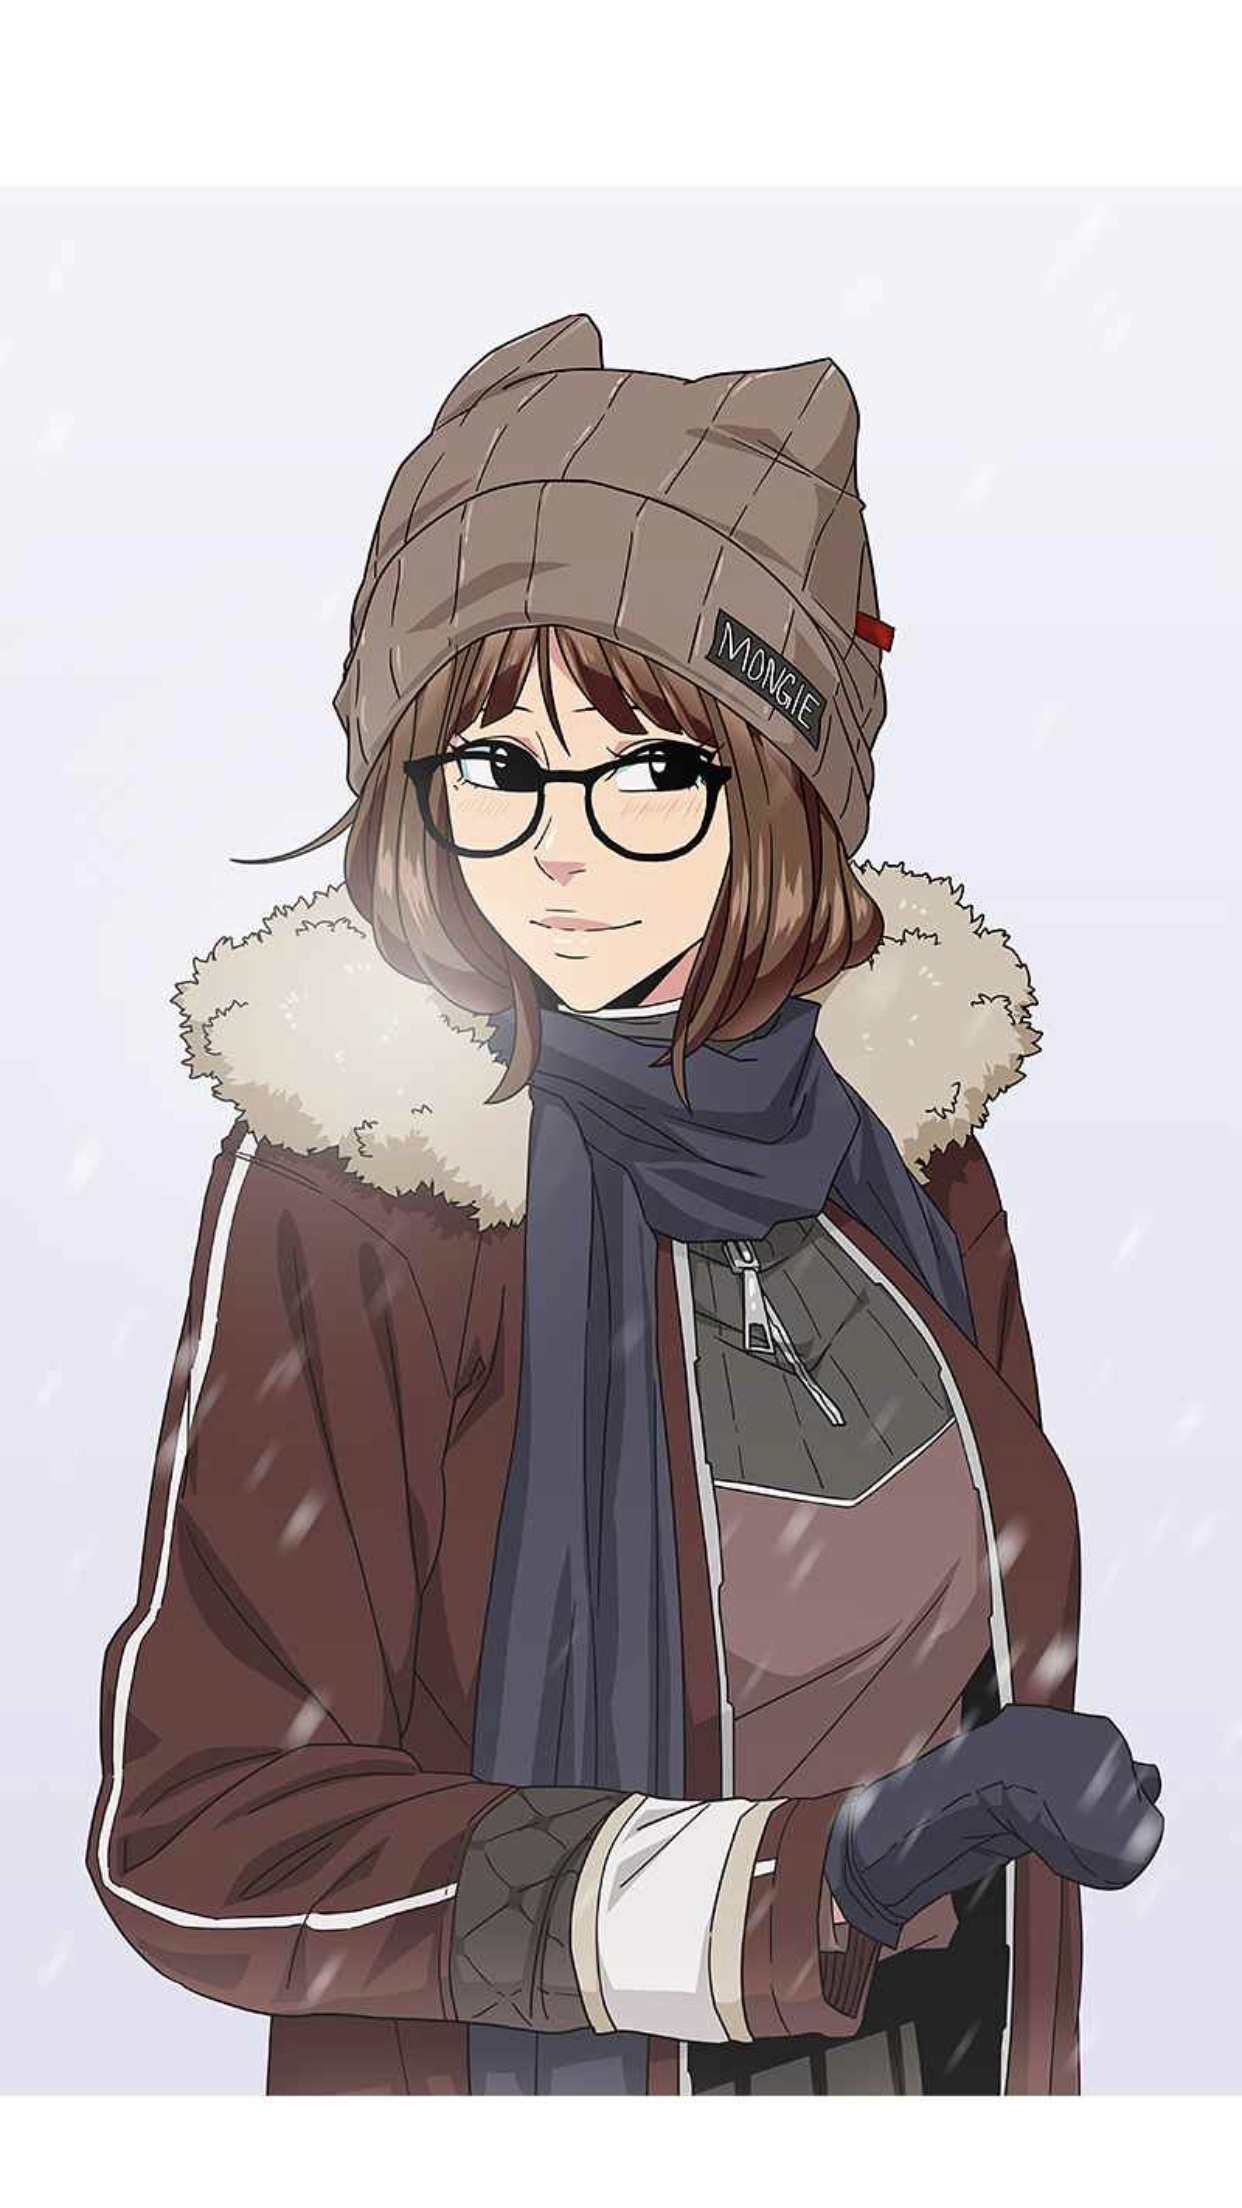 A screen capture from the Let's Play Webtoon by Mongie.